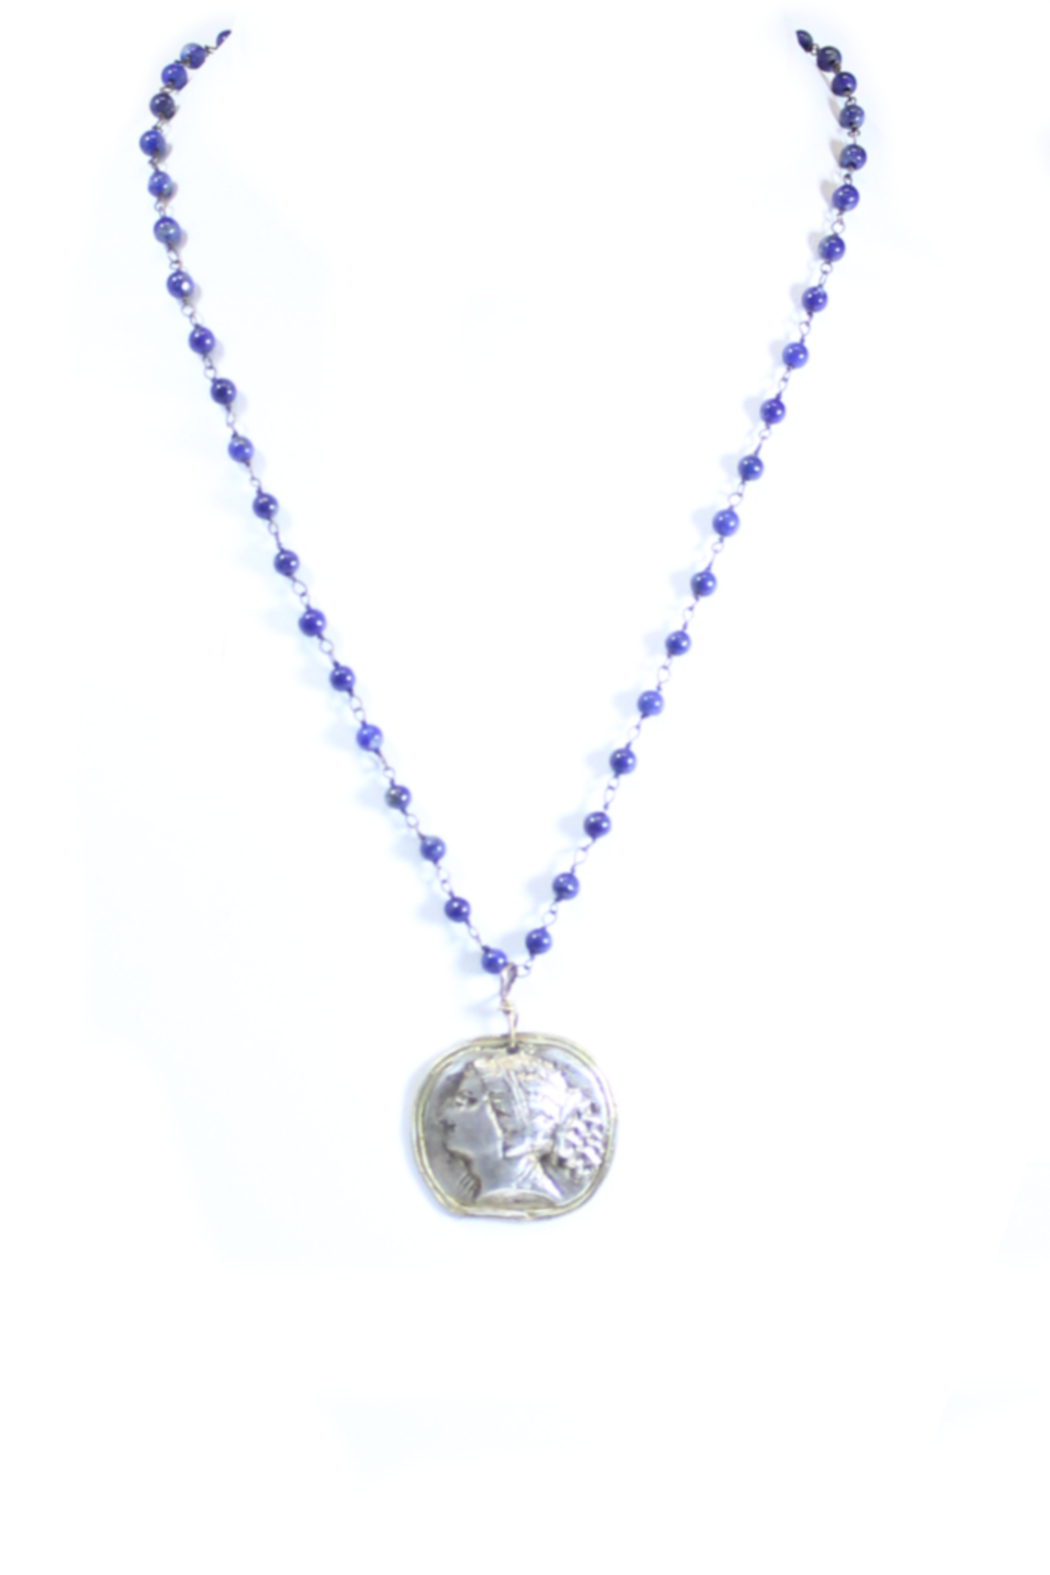 The Birds Nest ROMAN GIRL LAPIS ROSARY NECKLACE - 9 INCH CHAIN - Main Image